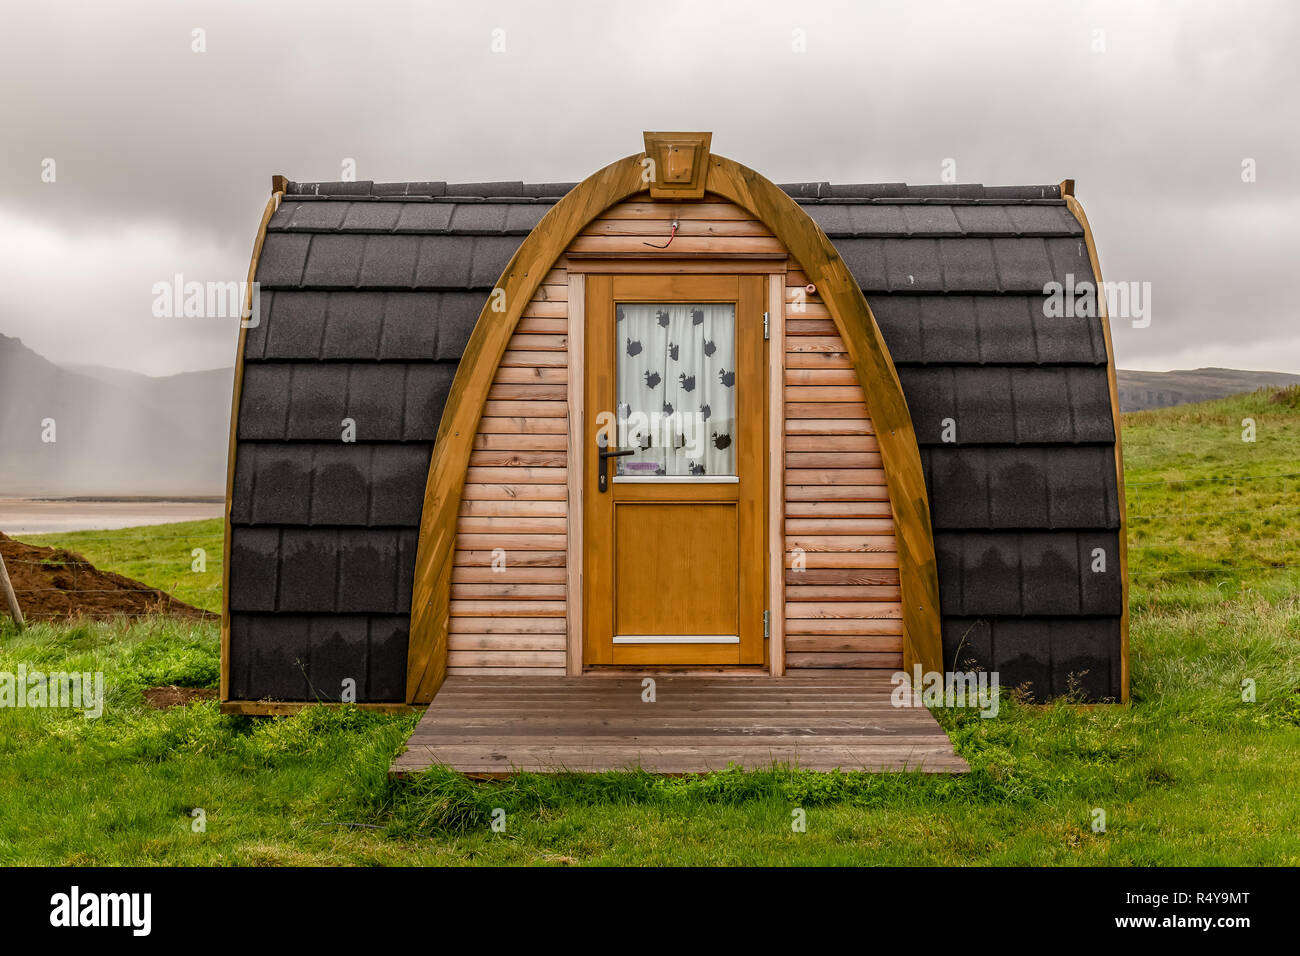 A beach hut in Iceland. - Stock Image